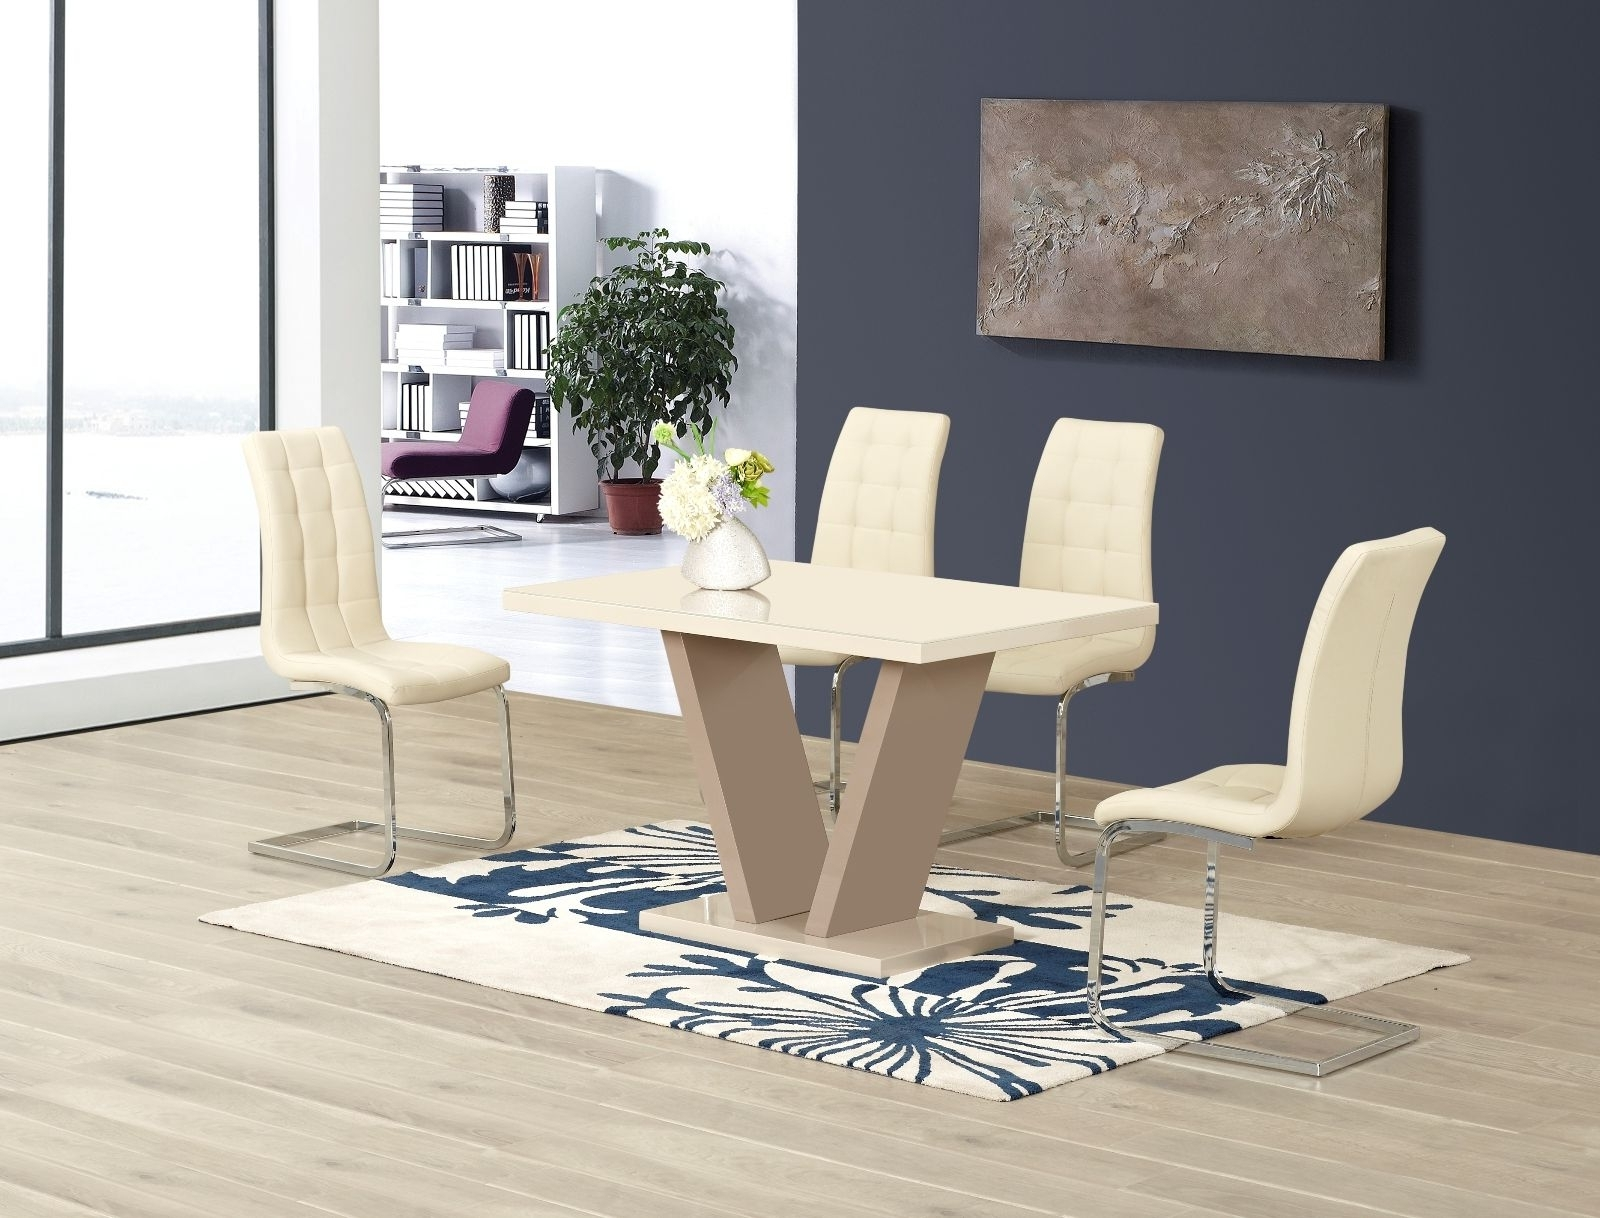 2018 Round Black Glass Dining Tables And 4 Chairs Within Ga Vico Cream Gloss Designer 120 Cm Dining Set & 4 Araceli Or Sicily (View 21 of 25)